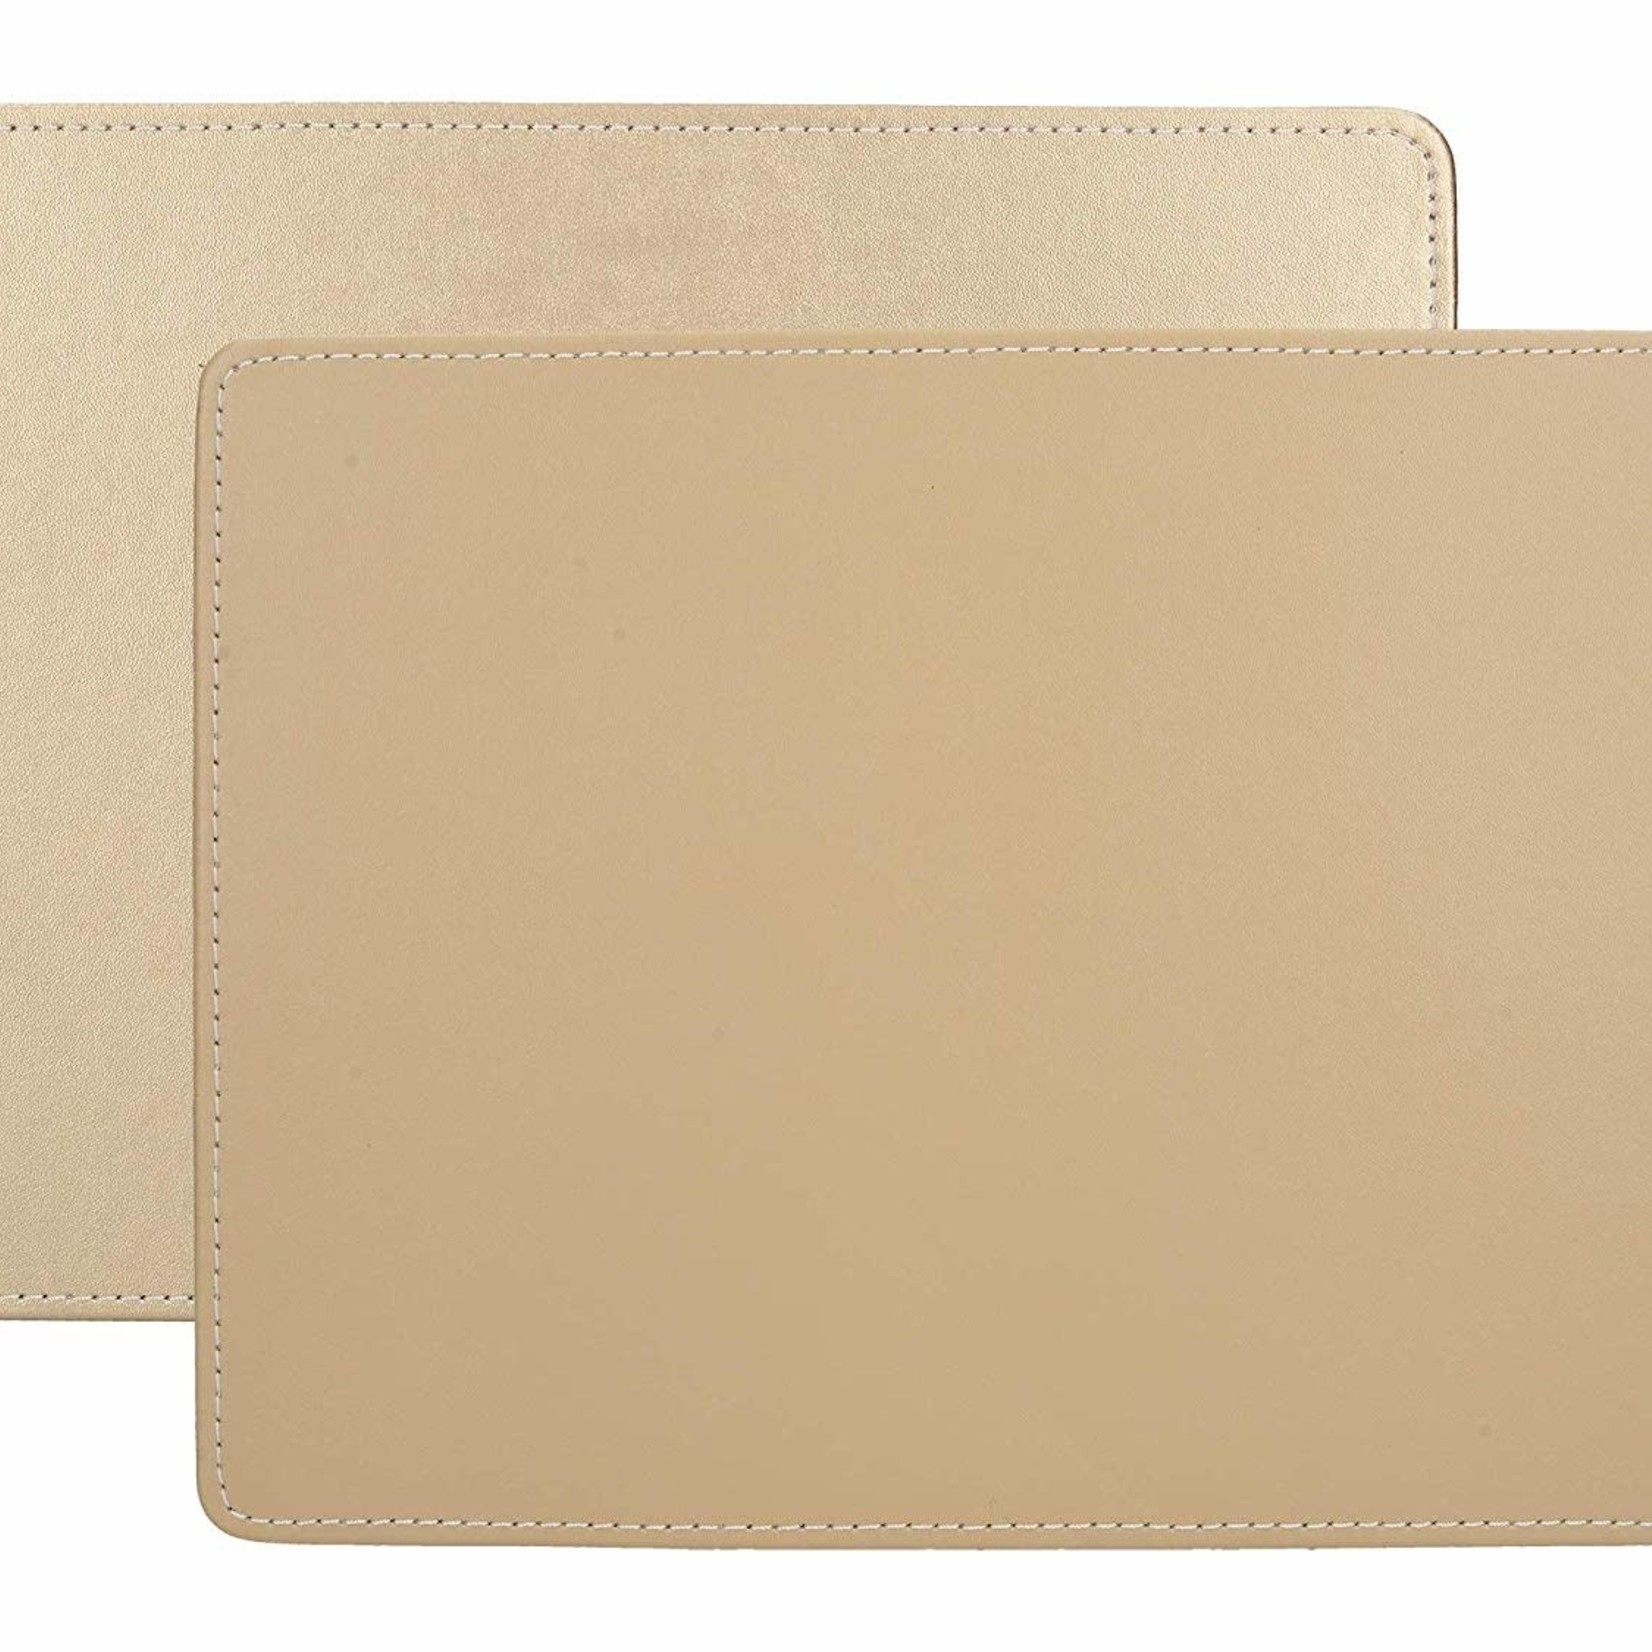 Kitchen Craft CREATIVE TOPS PREMIUM STITCHED FAUX LEATHER PACK 4 MATS METALLIC GOLD